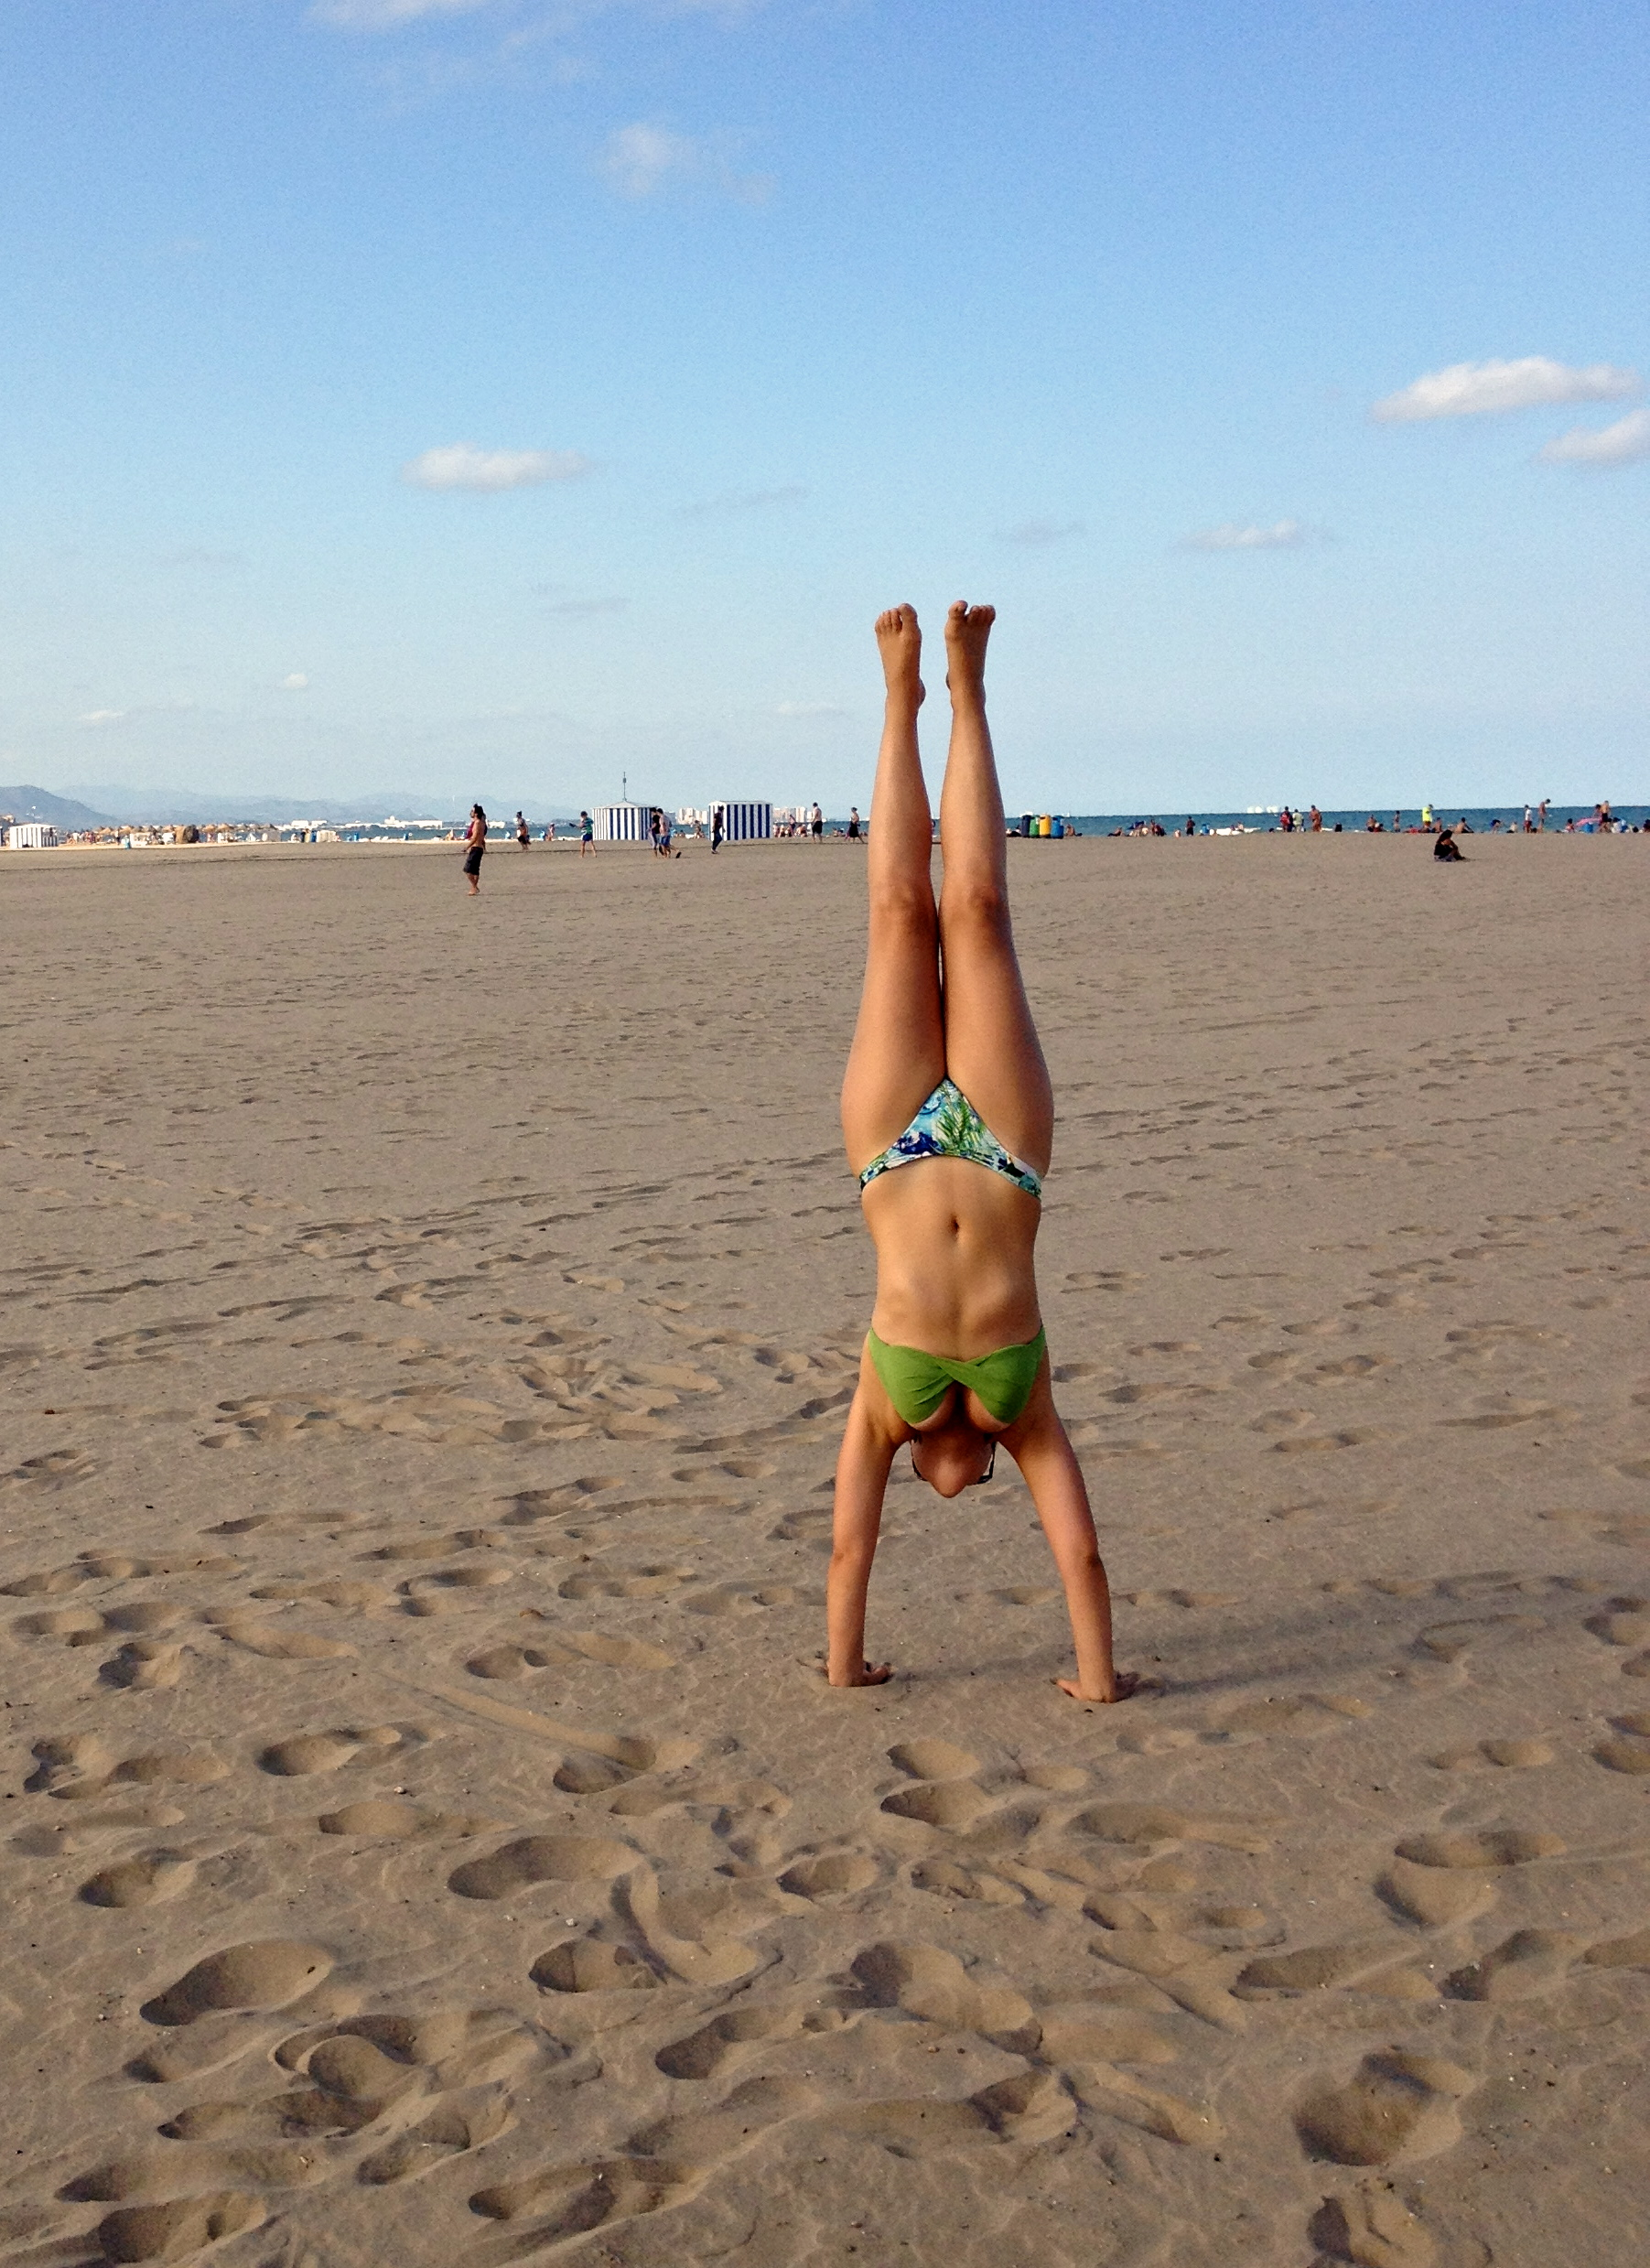 Handstand Yoga pose at the beach in Spain, Om Yoga Instructor Maria Lages